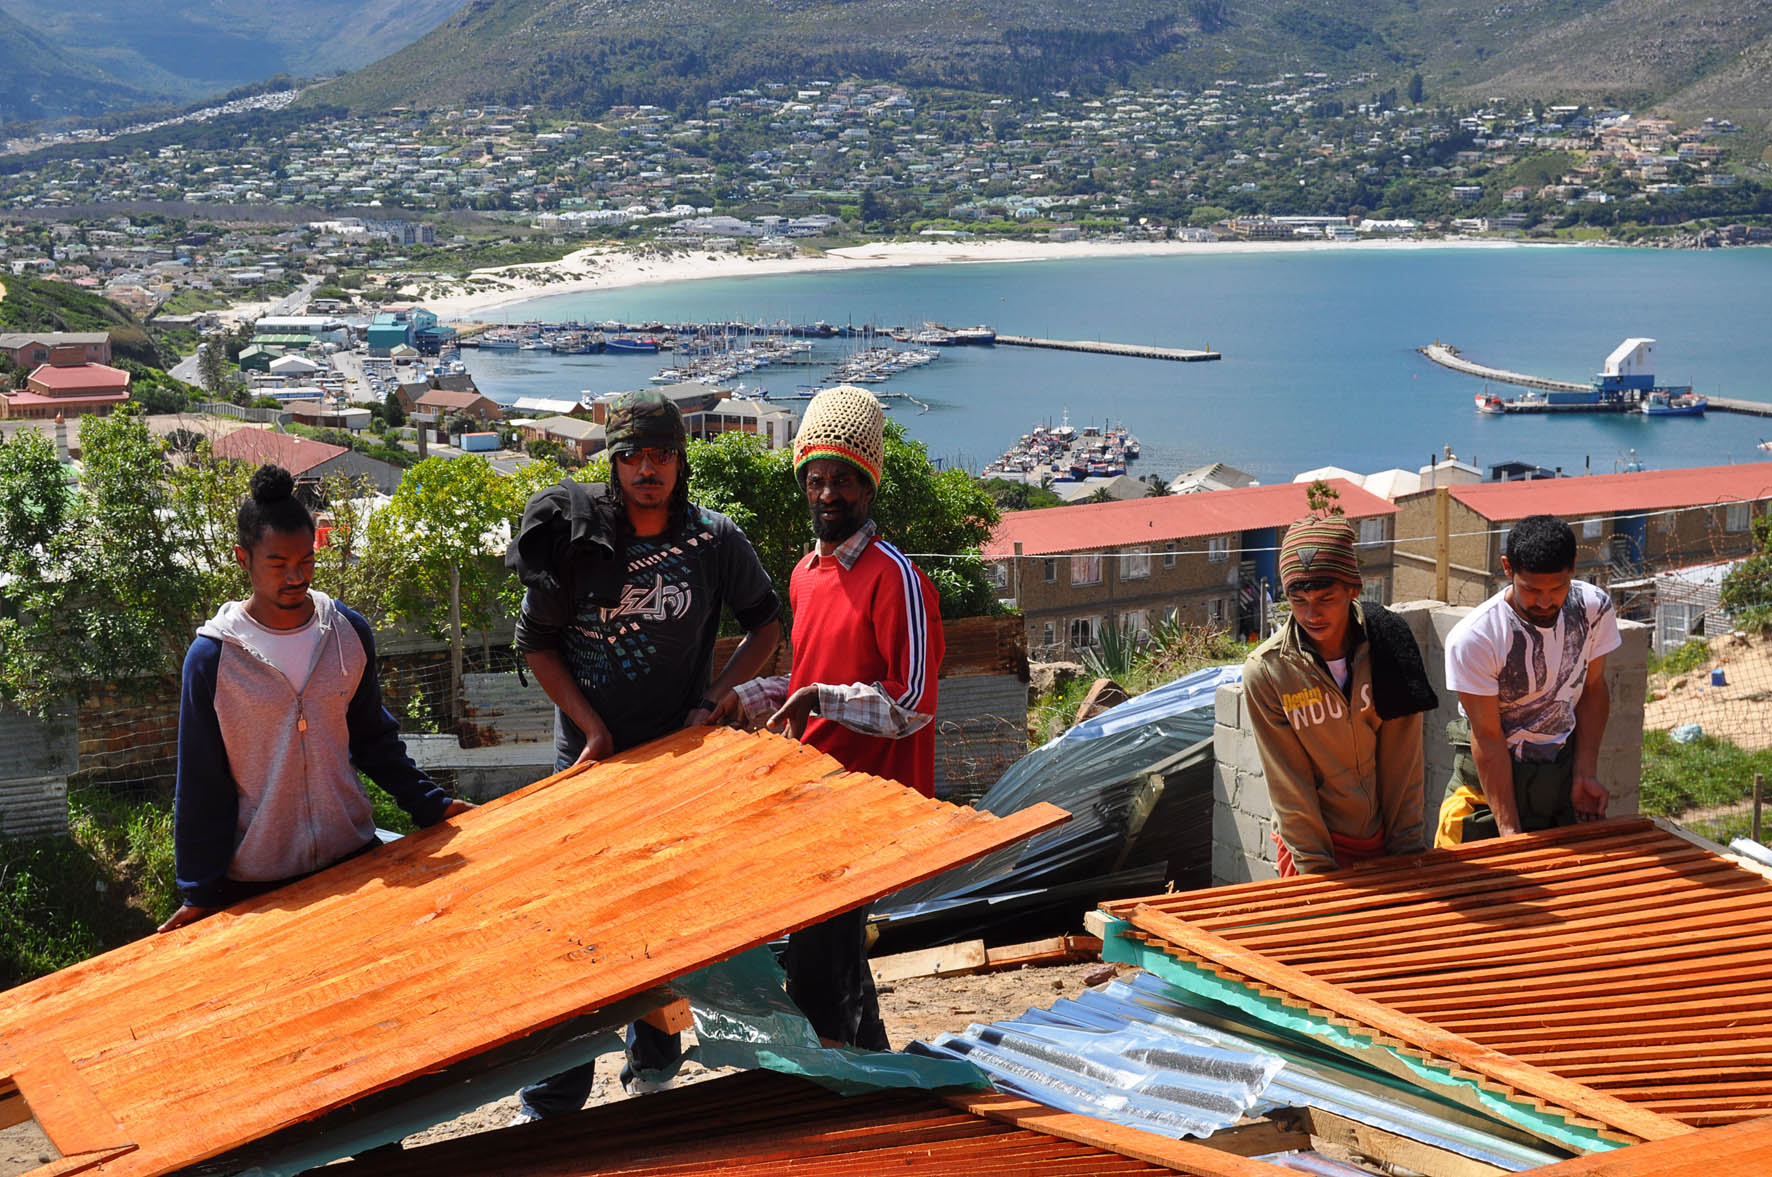 Eviction order threats follow Hout Bay clashes